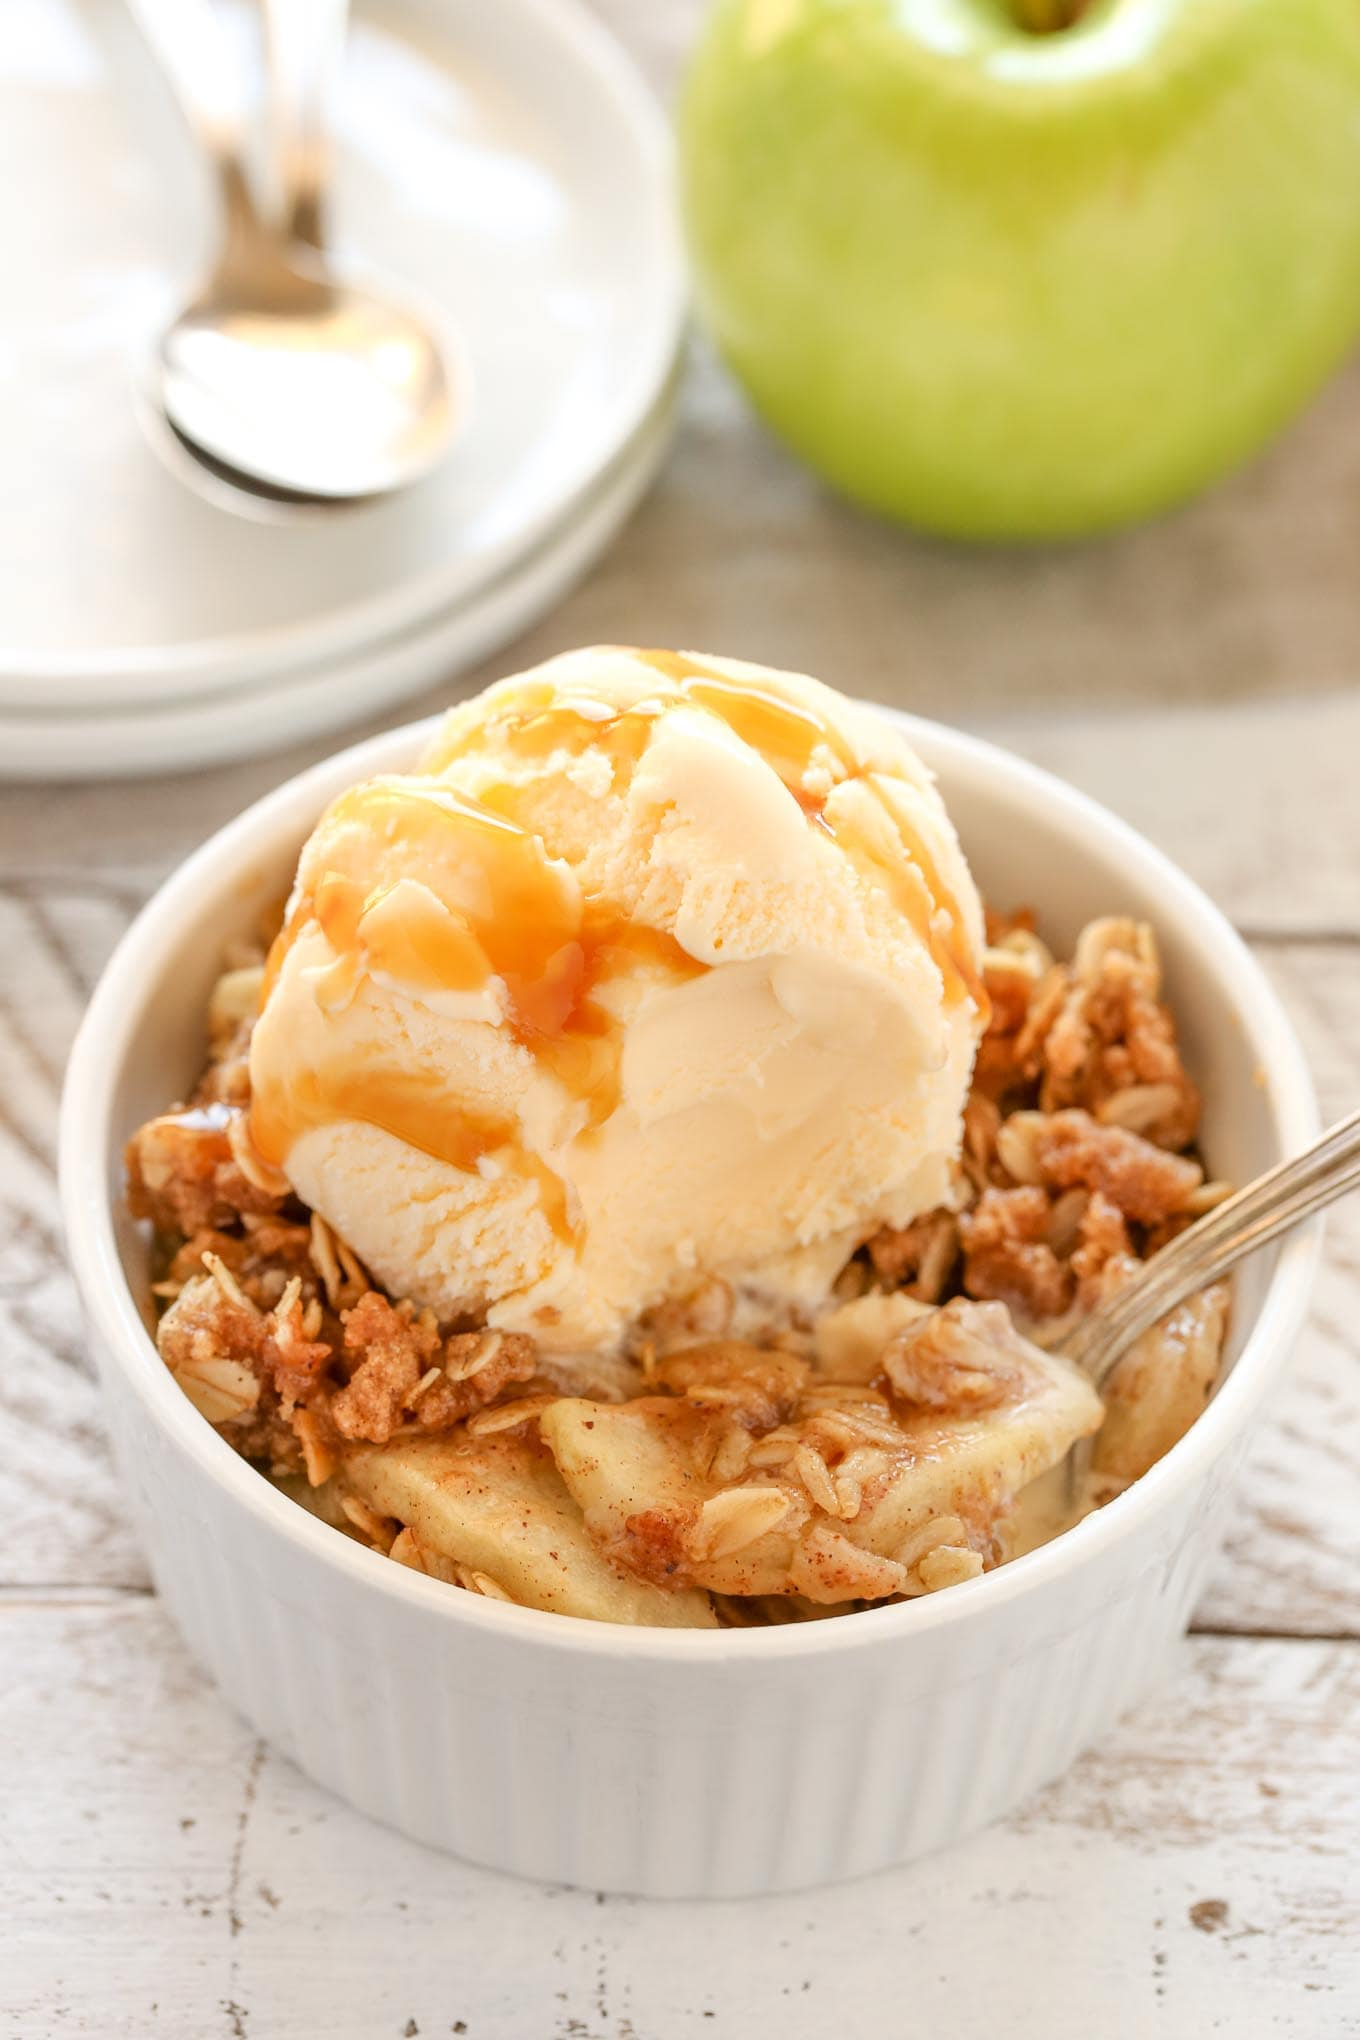 An easy Cinnamon Apple Crisp recipe made with sliced apples and a crispy brown sugar oat topping. The perfect easy dessert for any time of year!